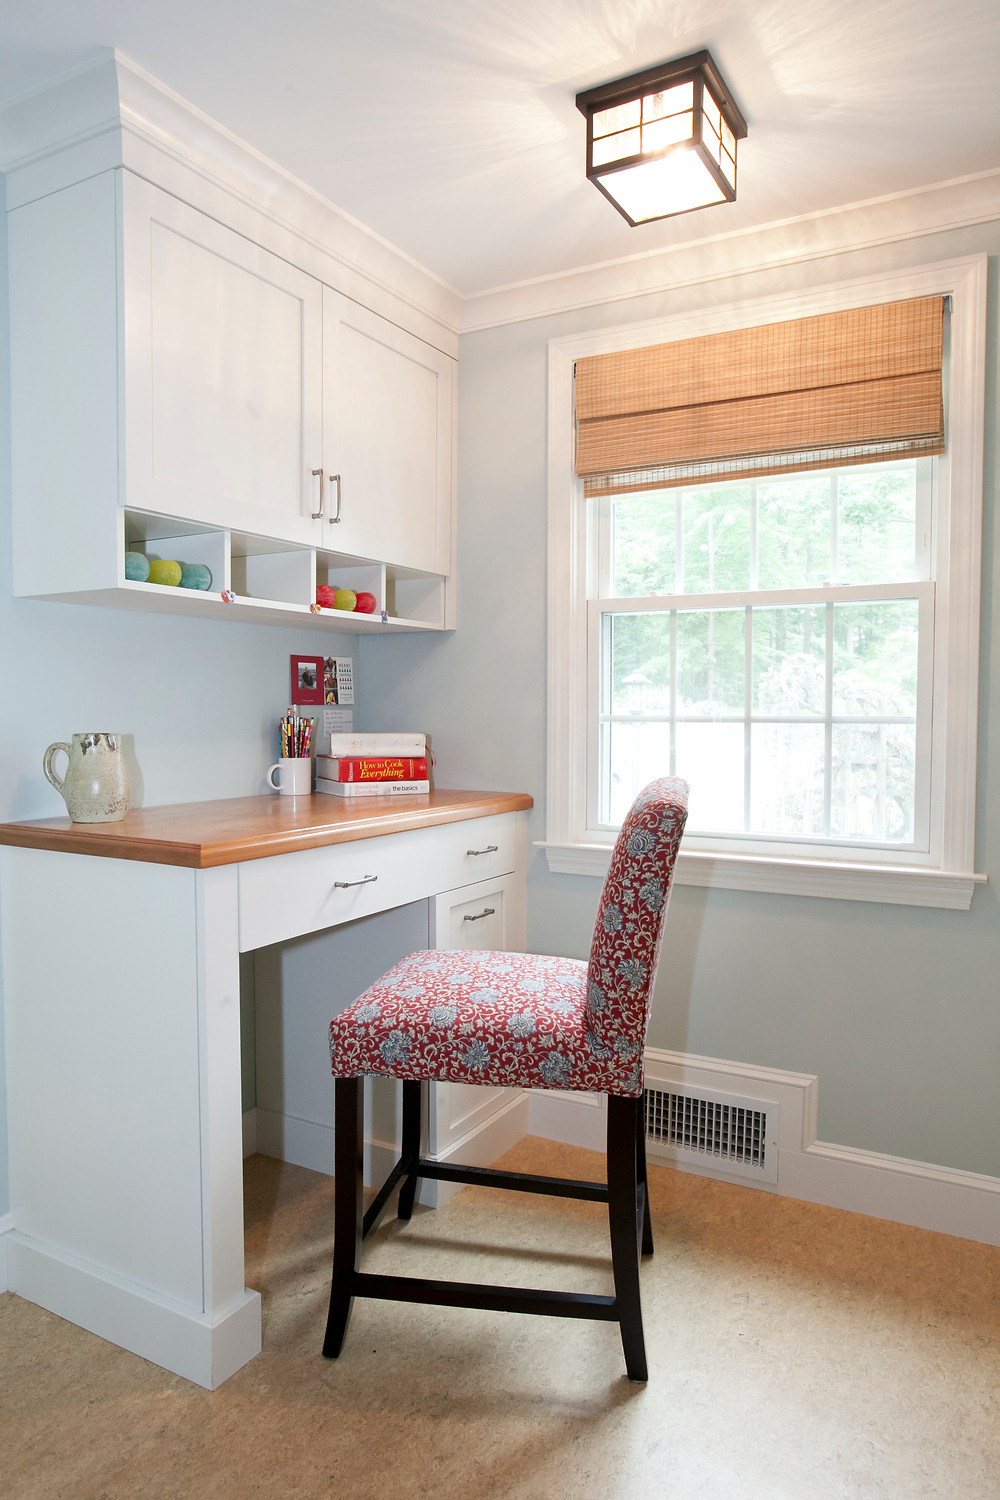 Built-in desk in white kitchen with wood top